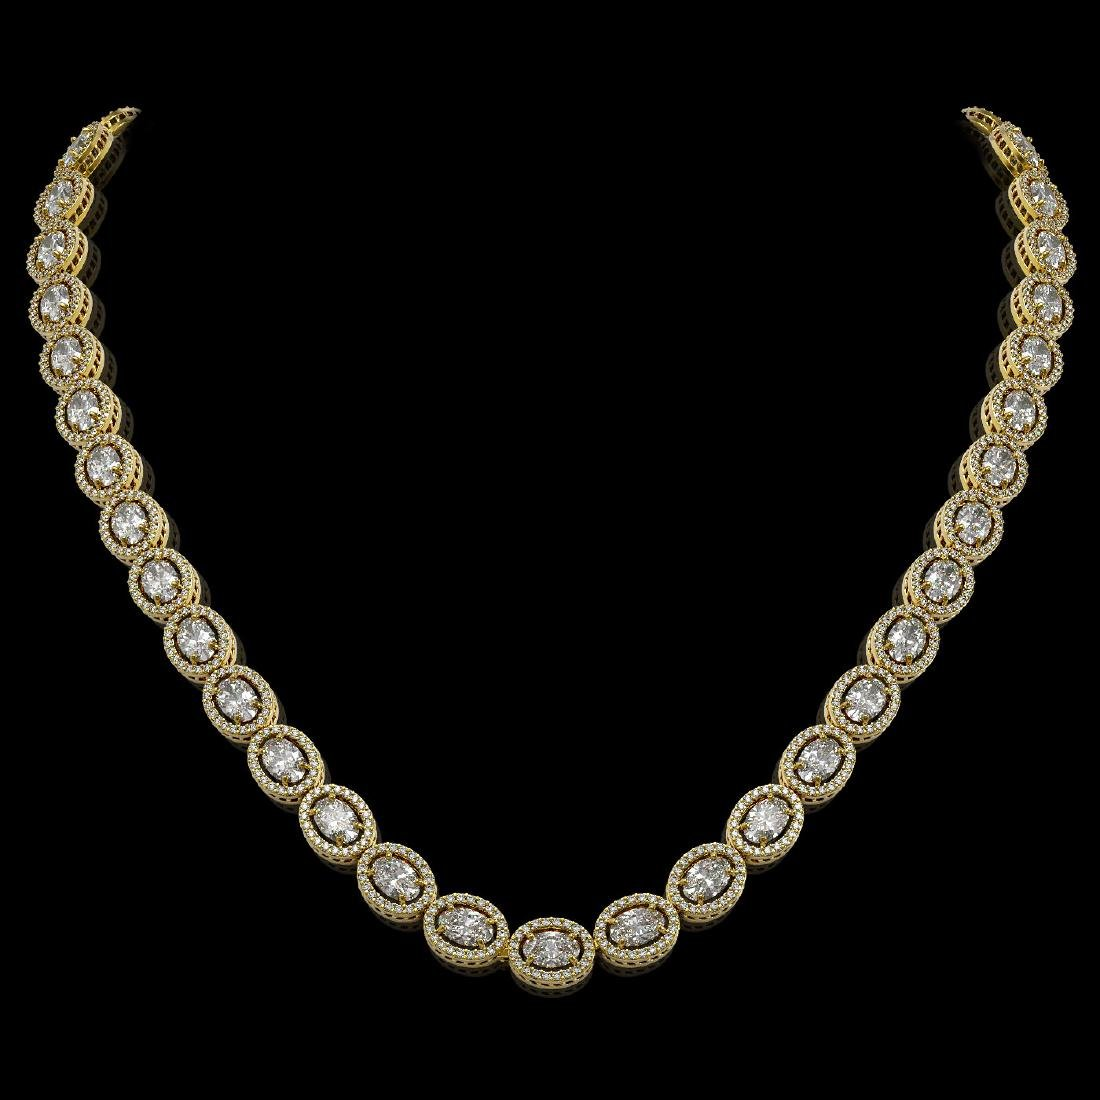 30.41 CTW Oval Diamond Designer Necklace 18K Yellow